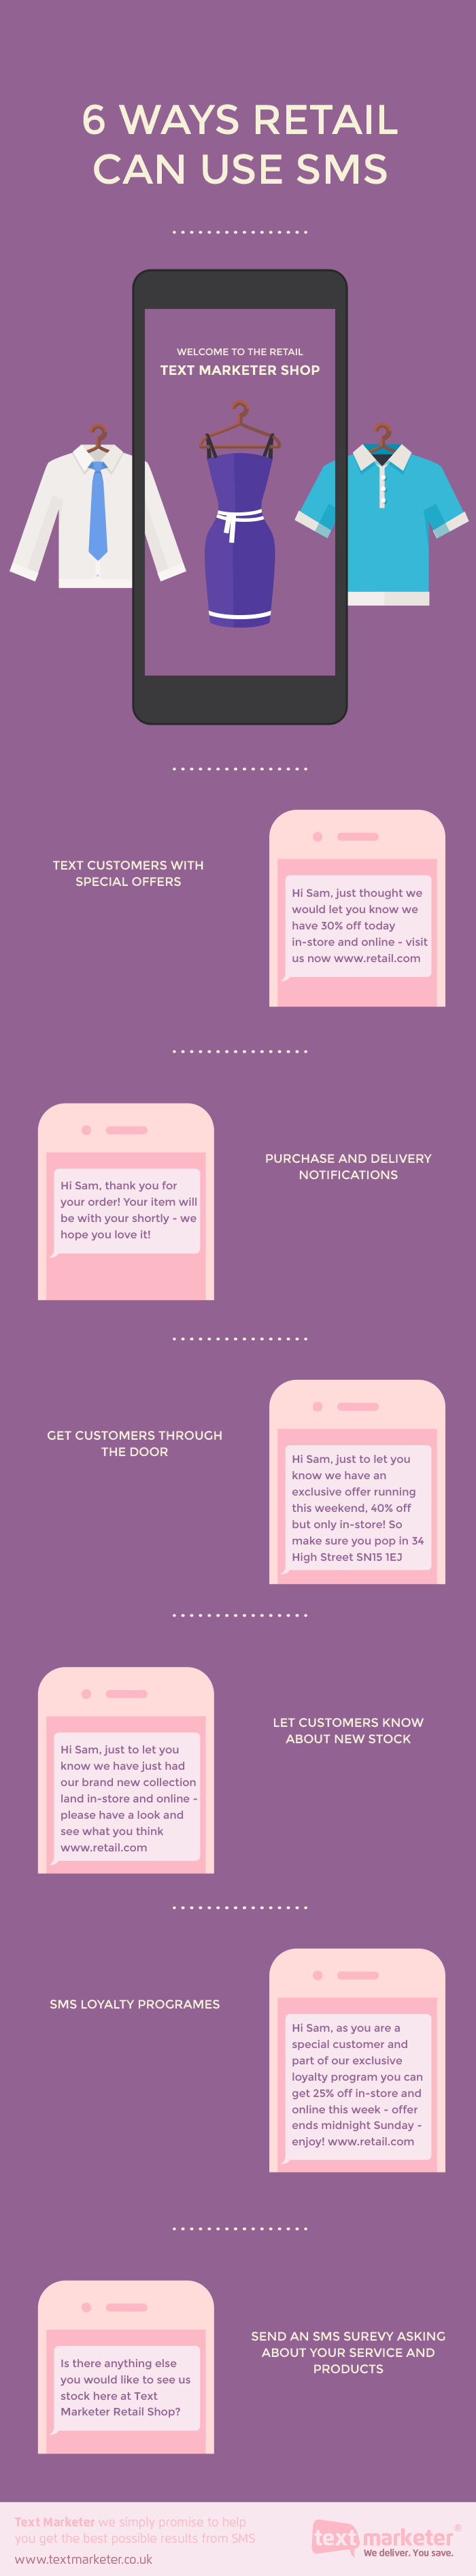 Retail-SMS-infographic